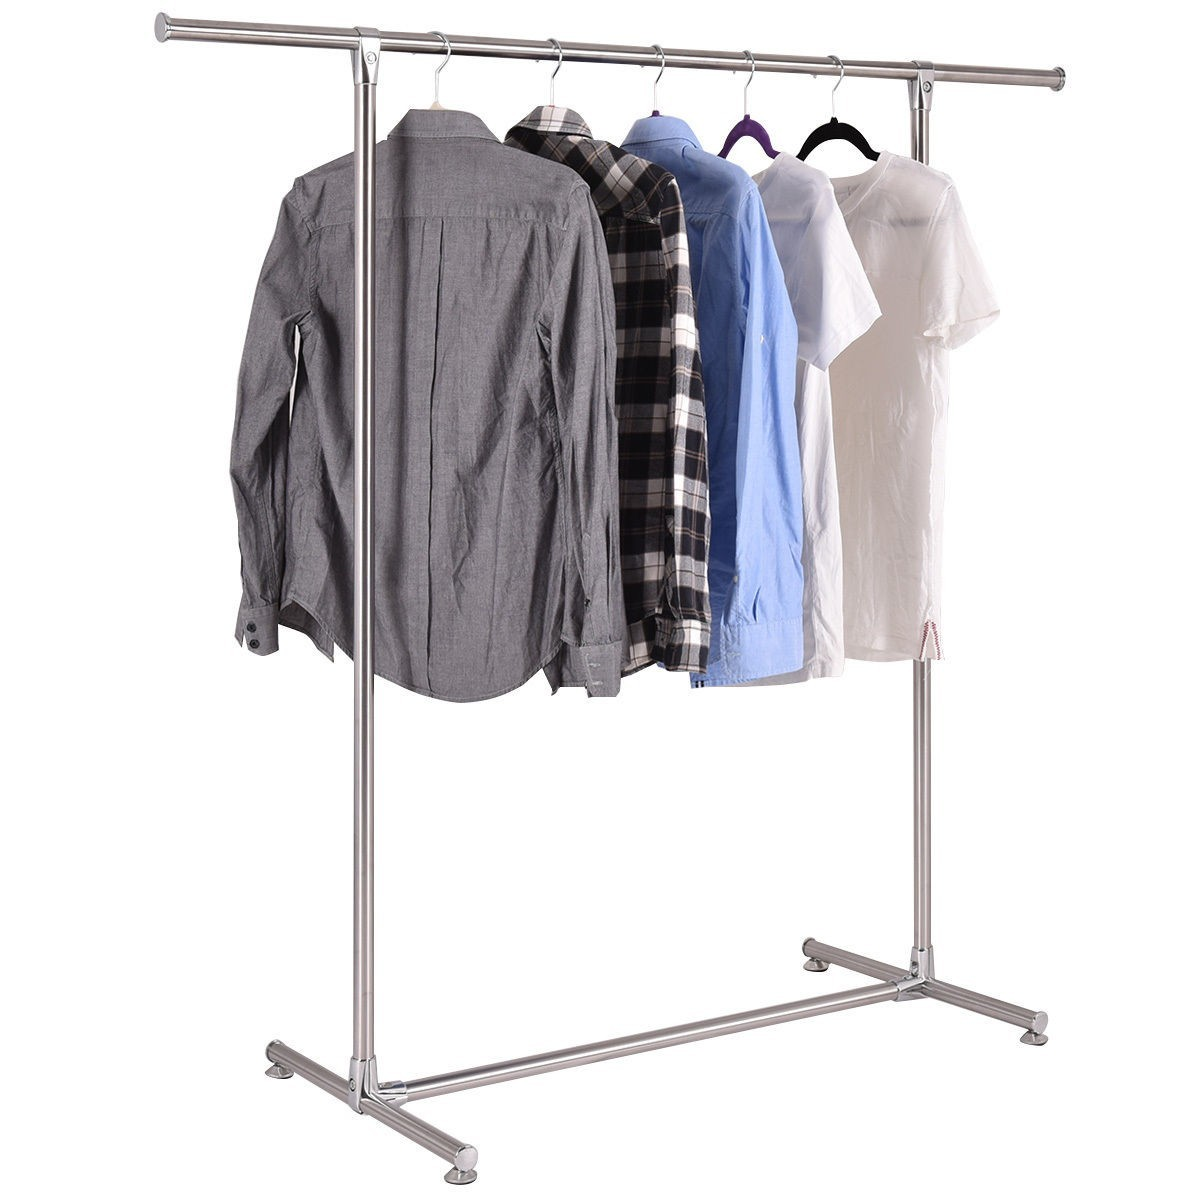 Heavy Duty Stainless Steel Garment Rack Clothes Hanging Drying Display Rail